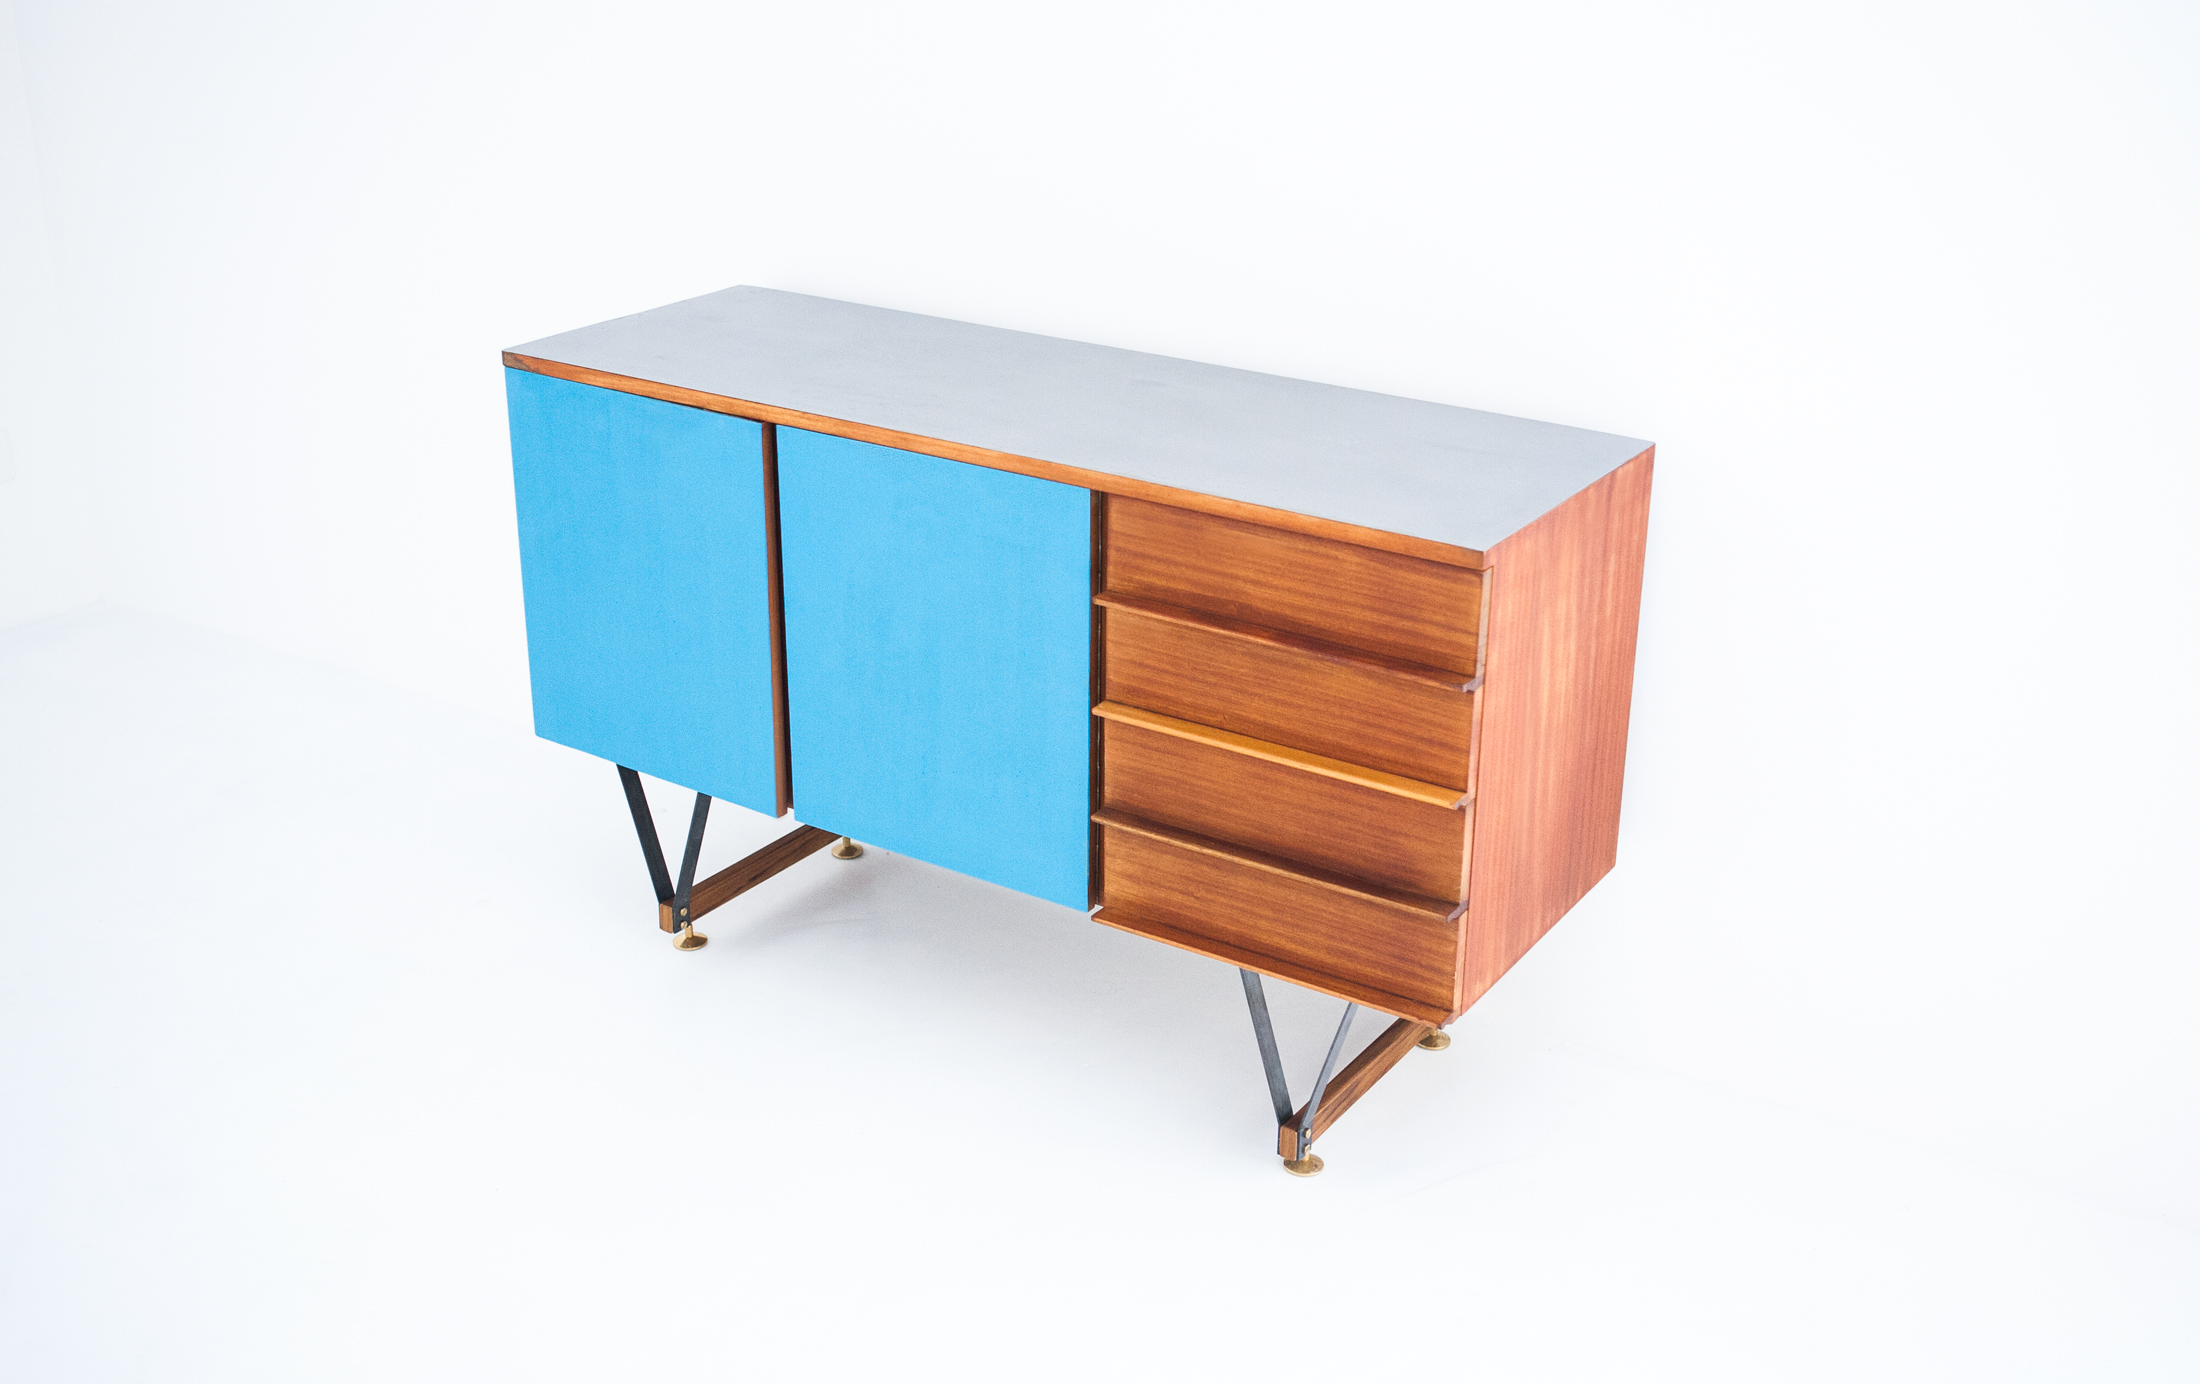 Sideboard 75 1 retro4m for Sideboard 4 meter lang